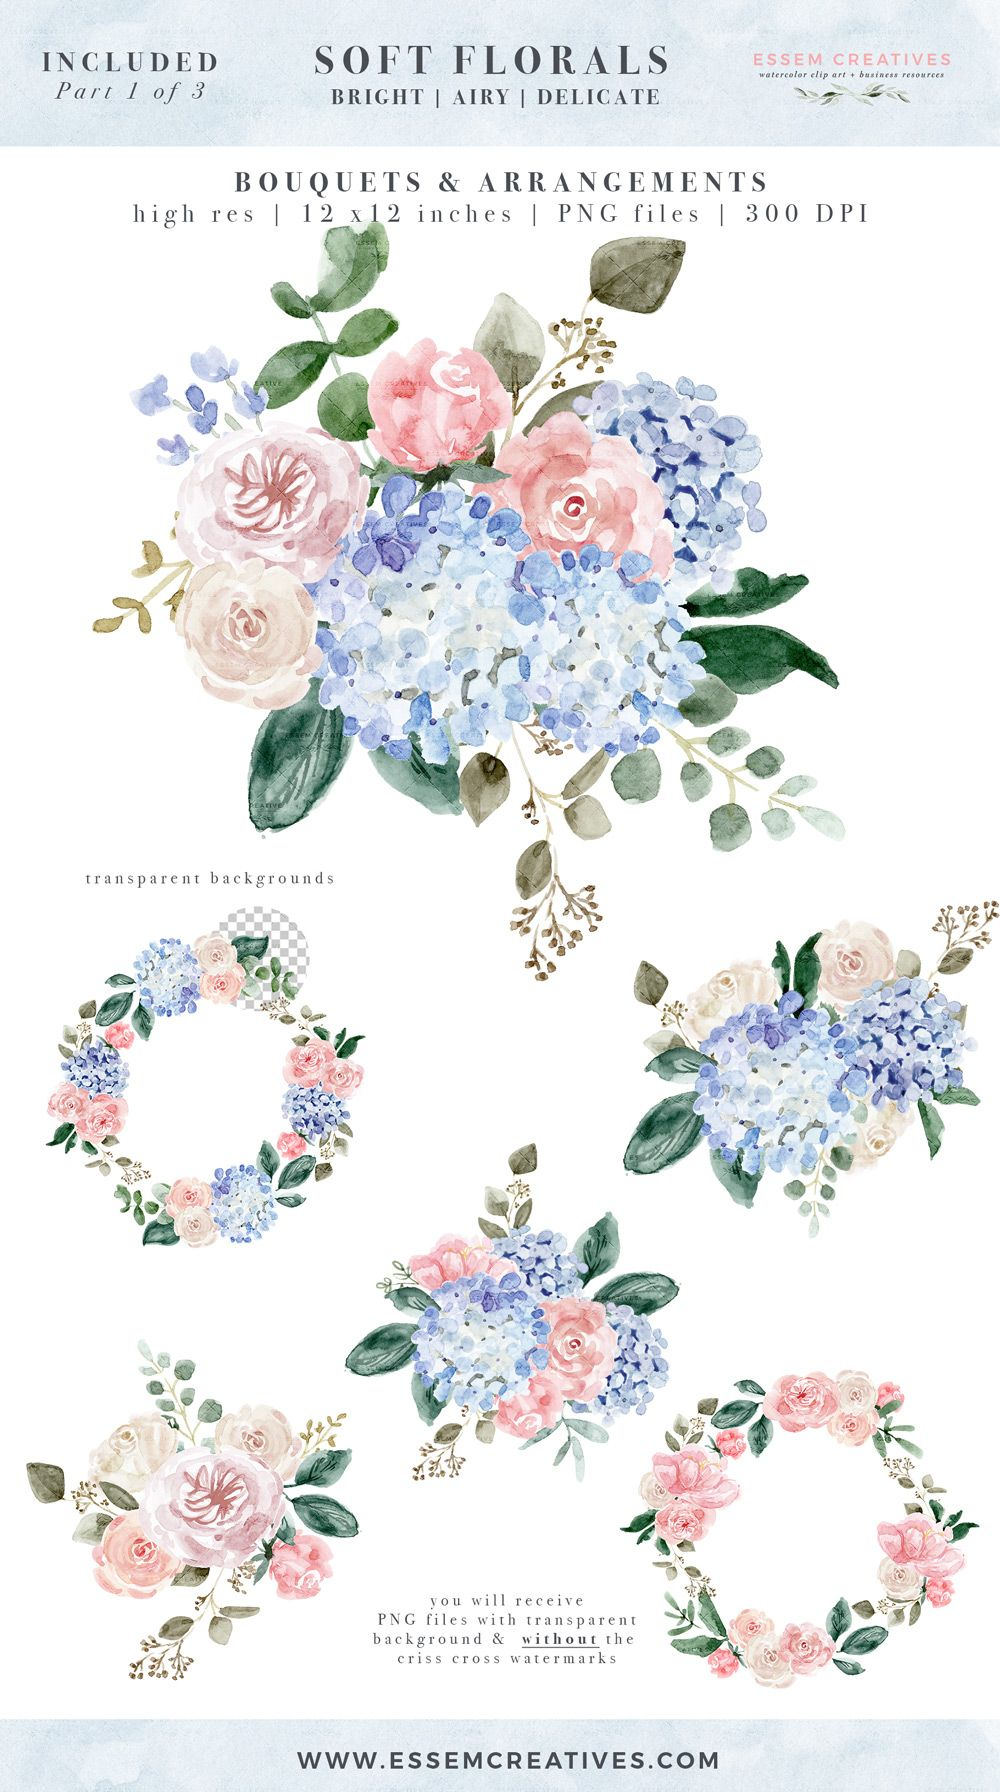 delicate Baby/'s Breath; hand painted; wedding resources; watercolor clipart digital download soft Watercolor floral wreath